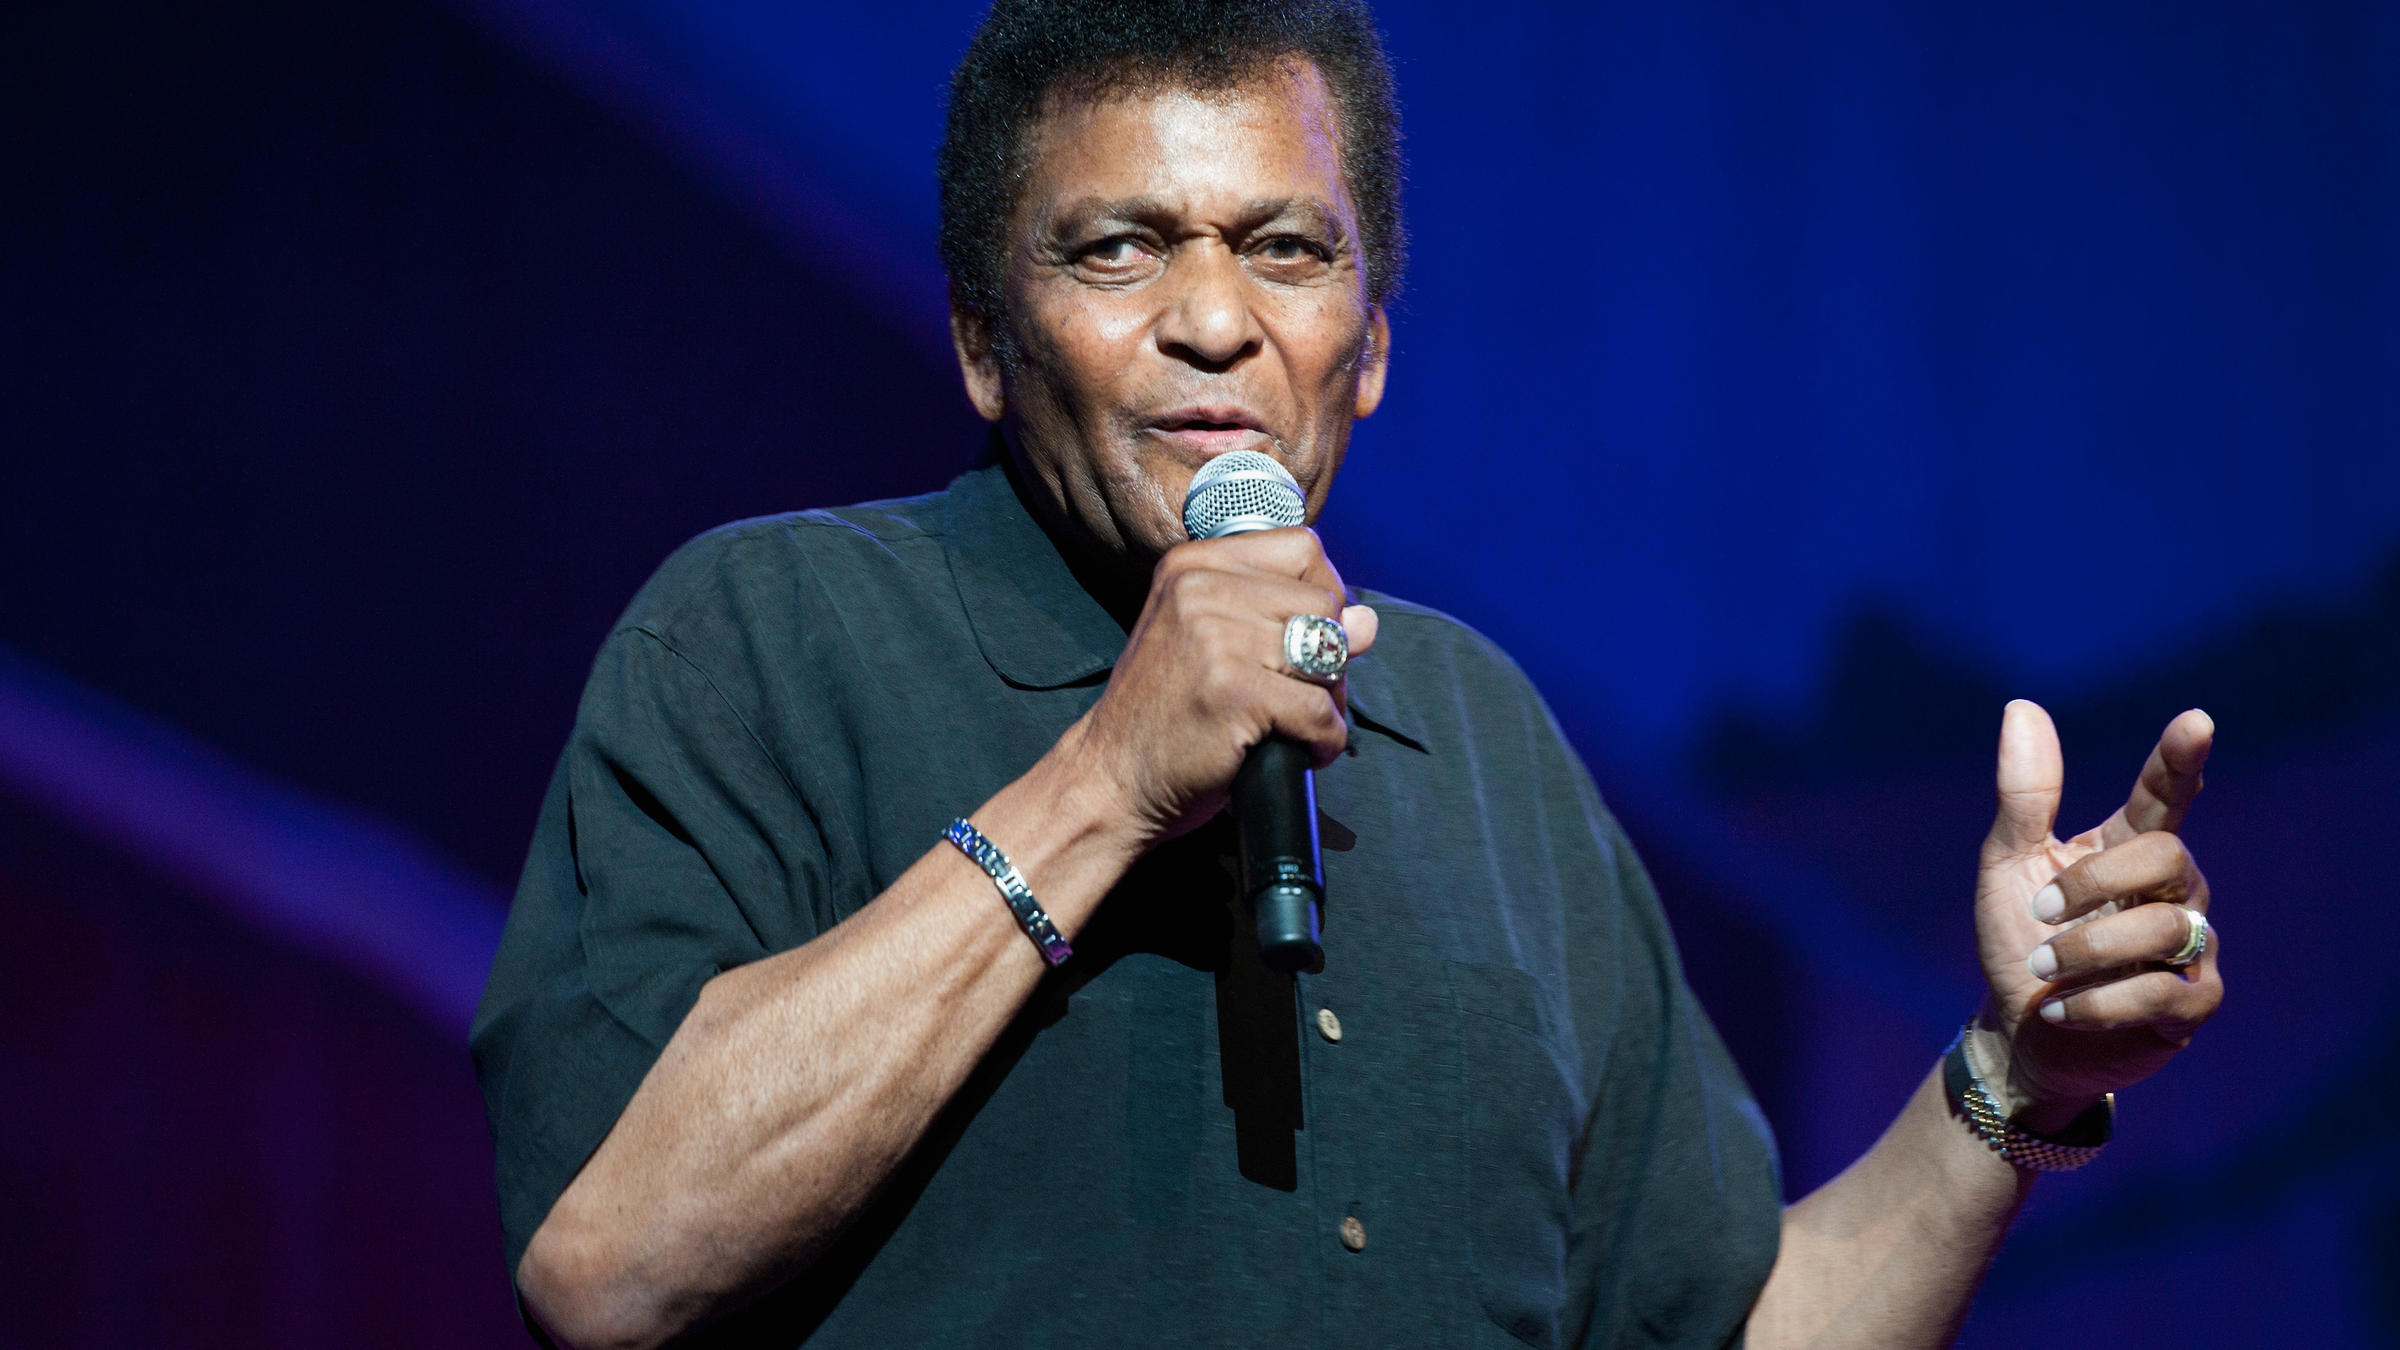 Charlie Pride Hits Ele you look like them and sound like us': charley pride's long